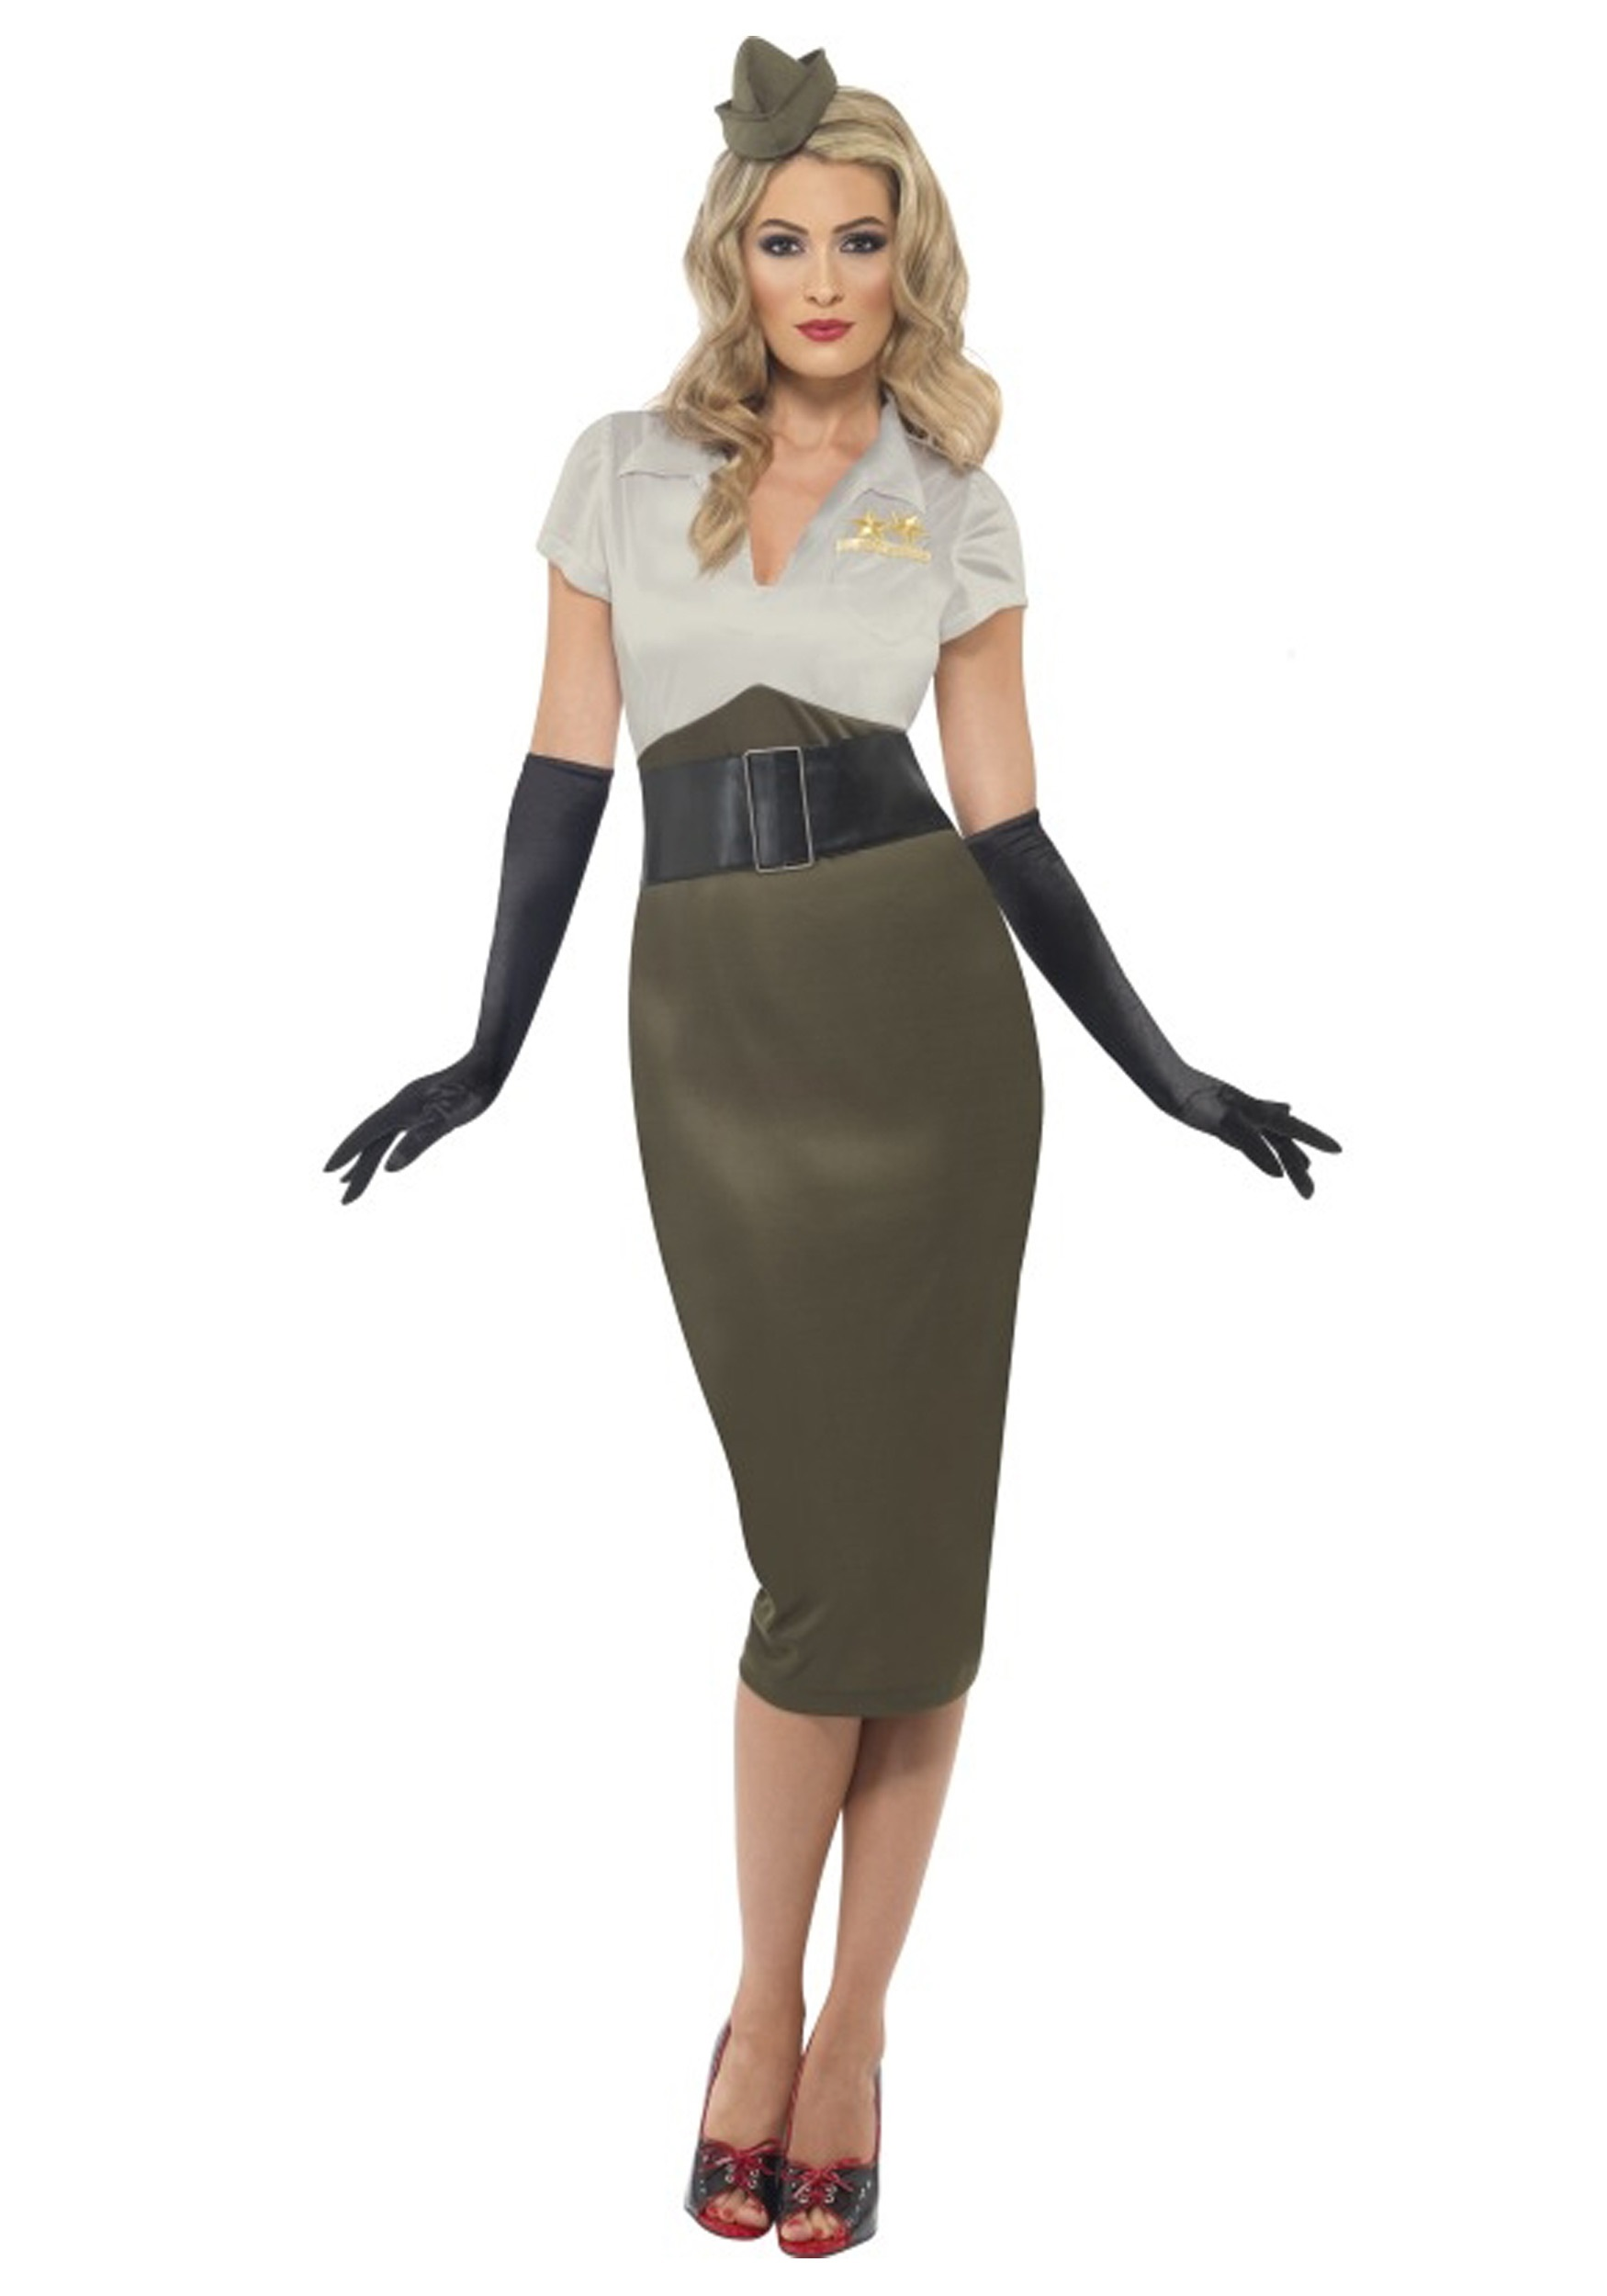 WW2 Army Pin Up Darling Costume  sc 1 st  Halloween Costumes & WW2 Army Pin Up Darling Costume - Halloween Costumes